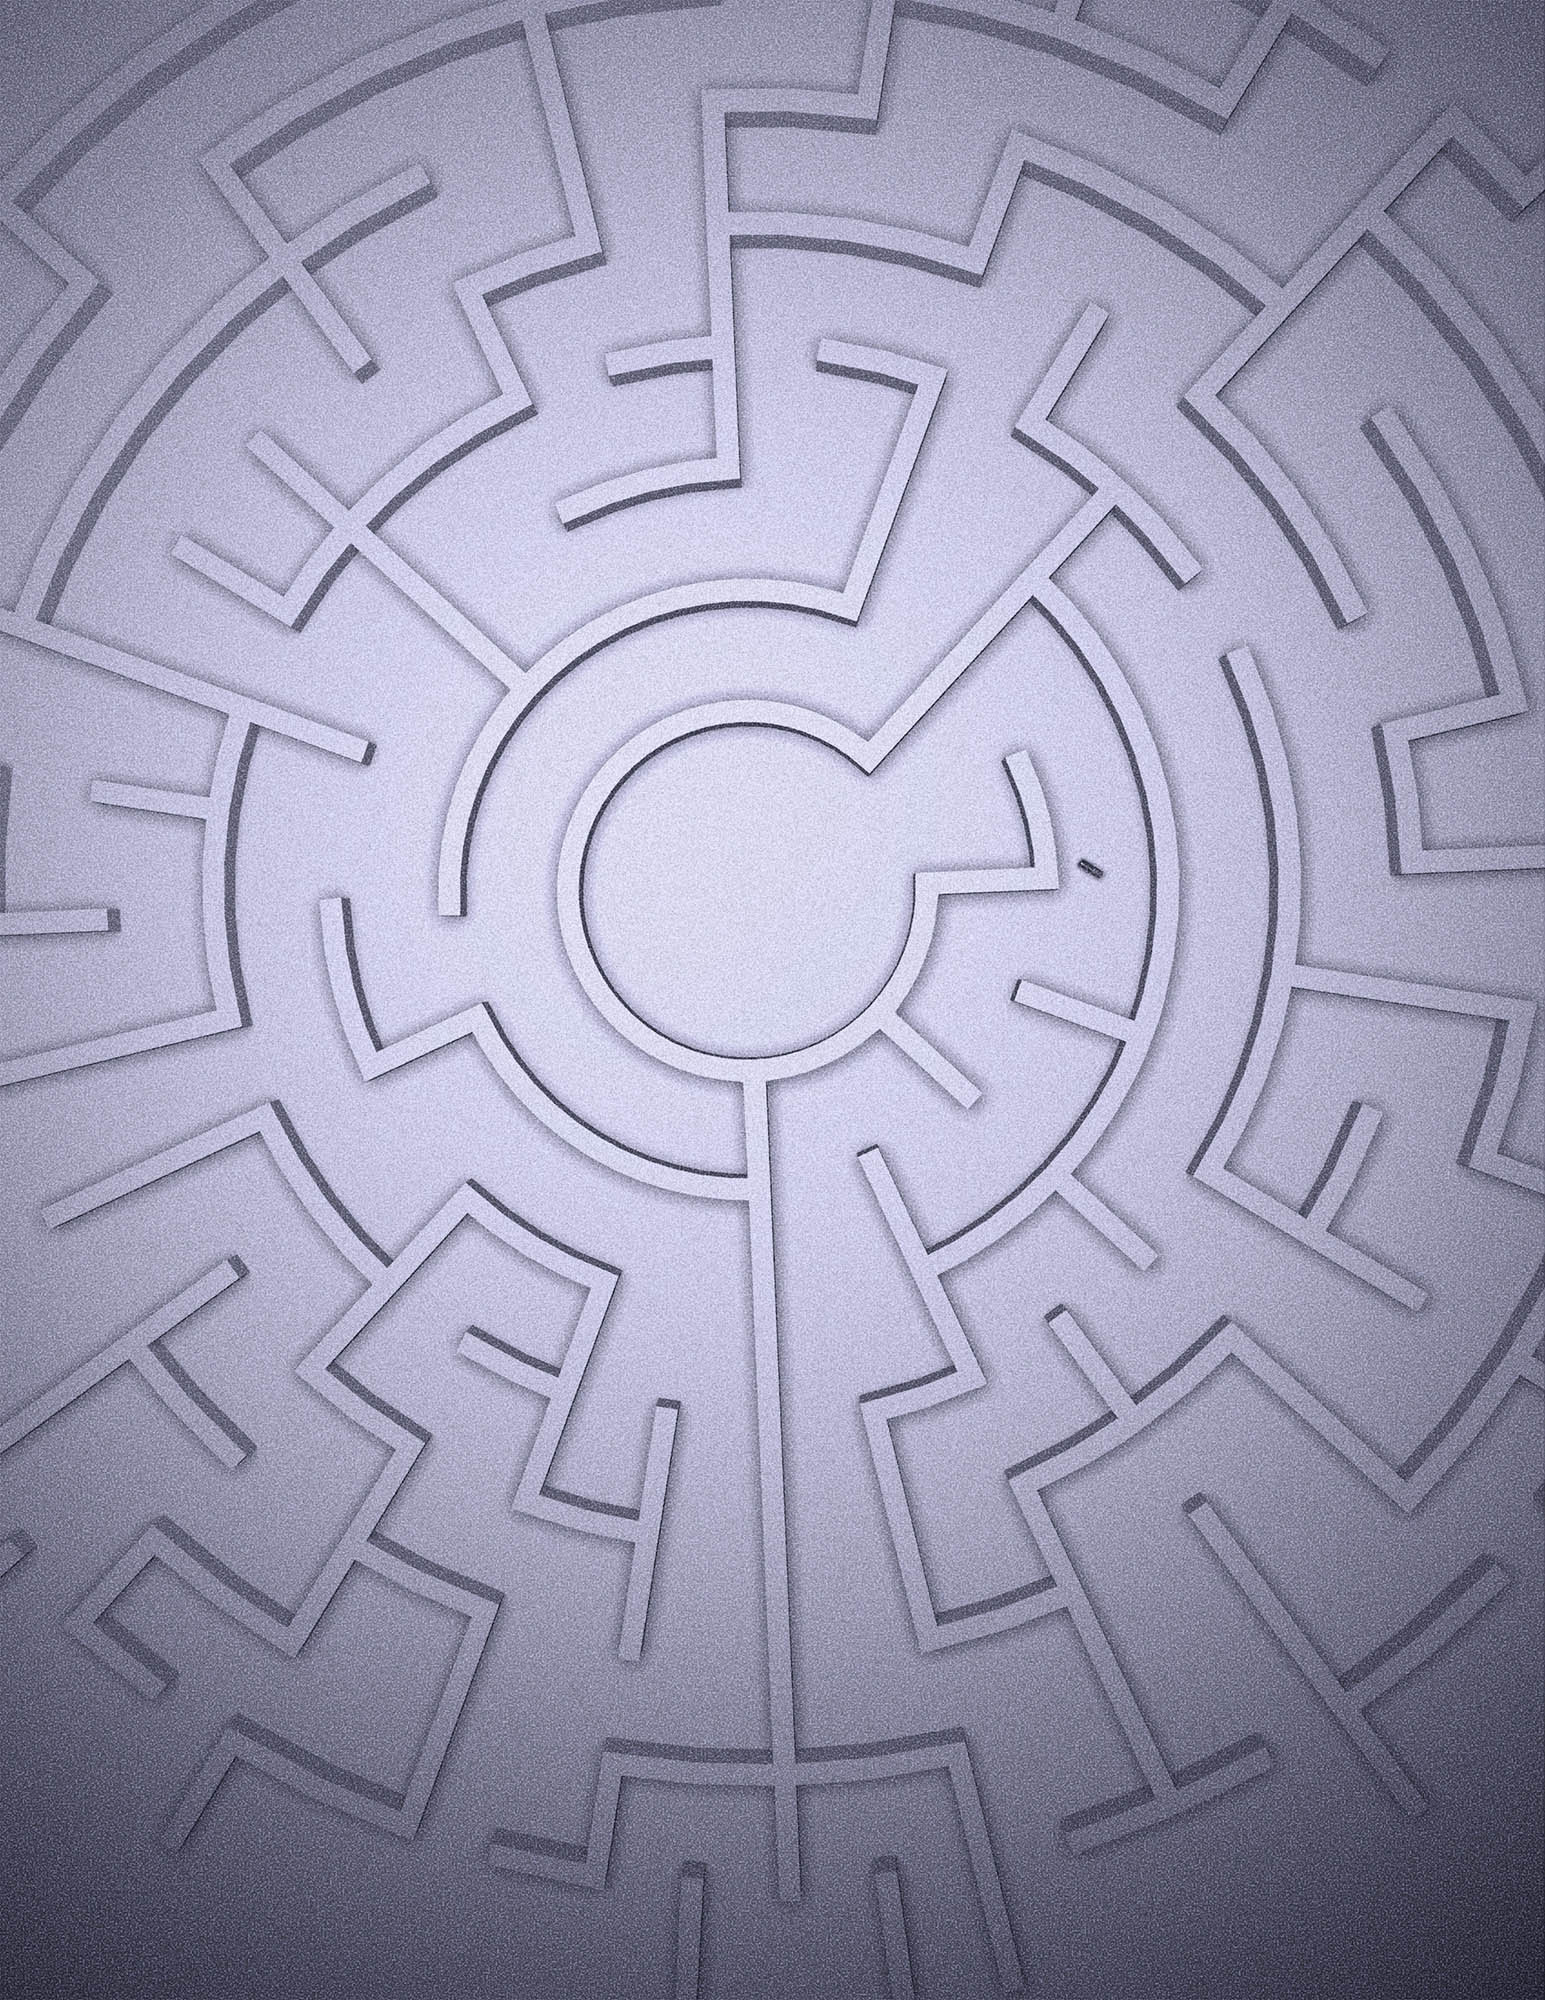 a birds eye view of a rod moving through a maze